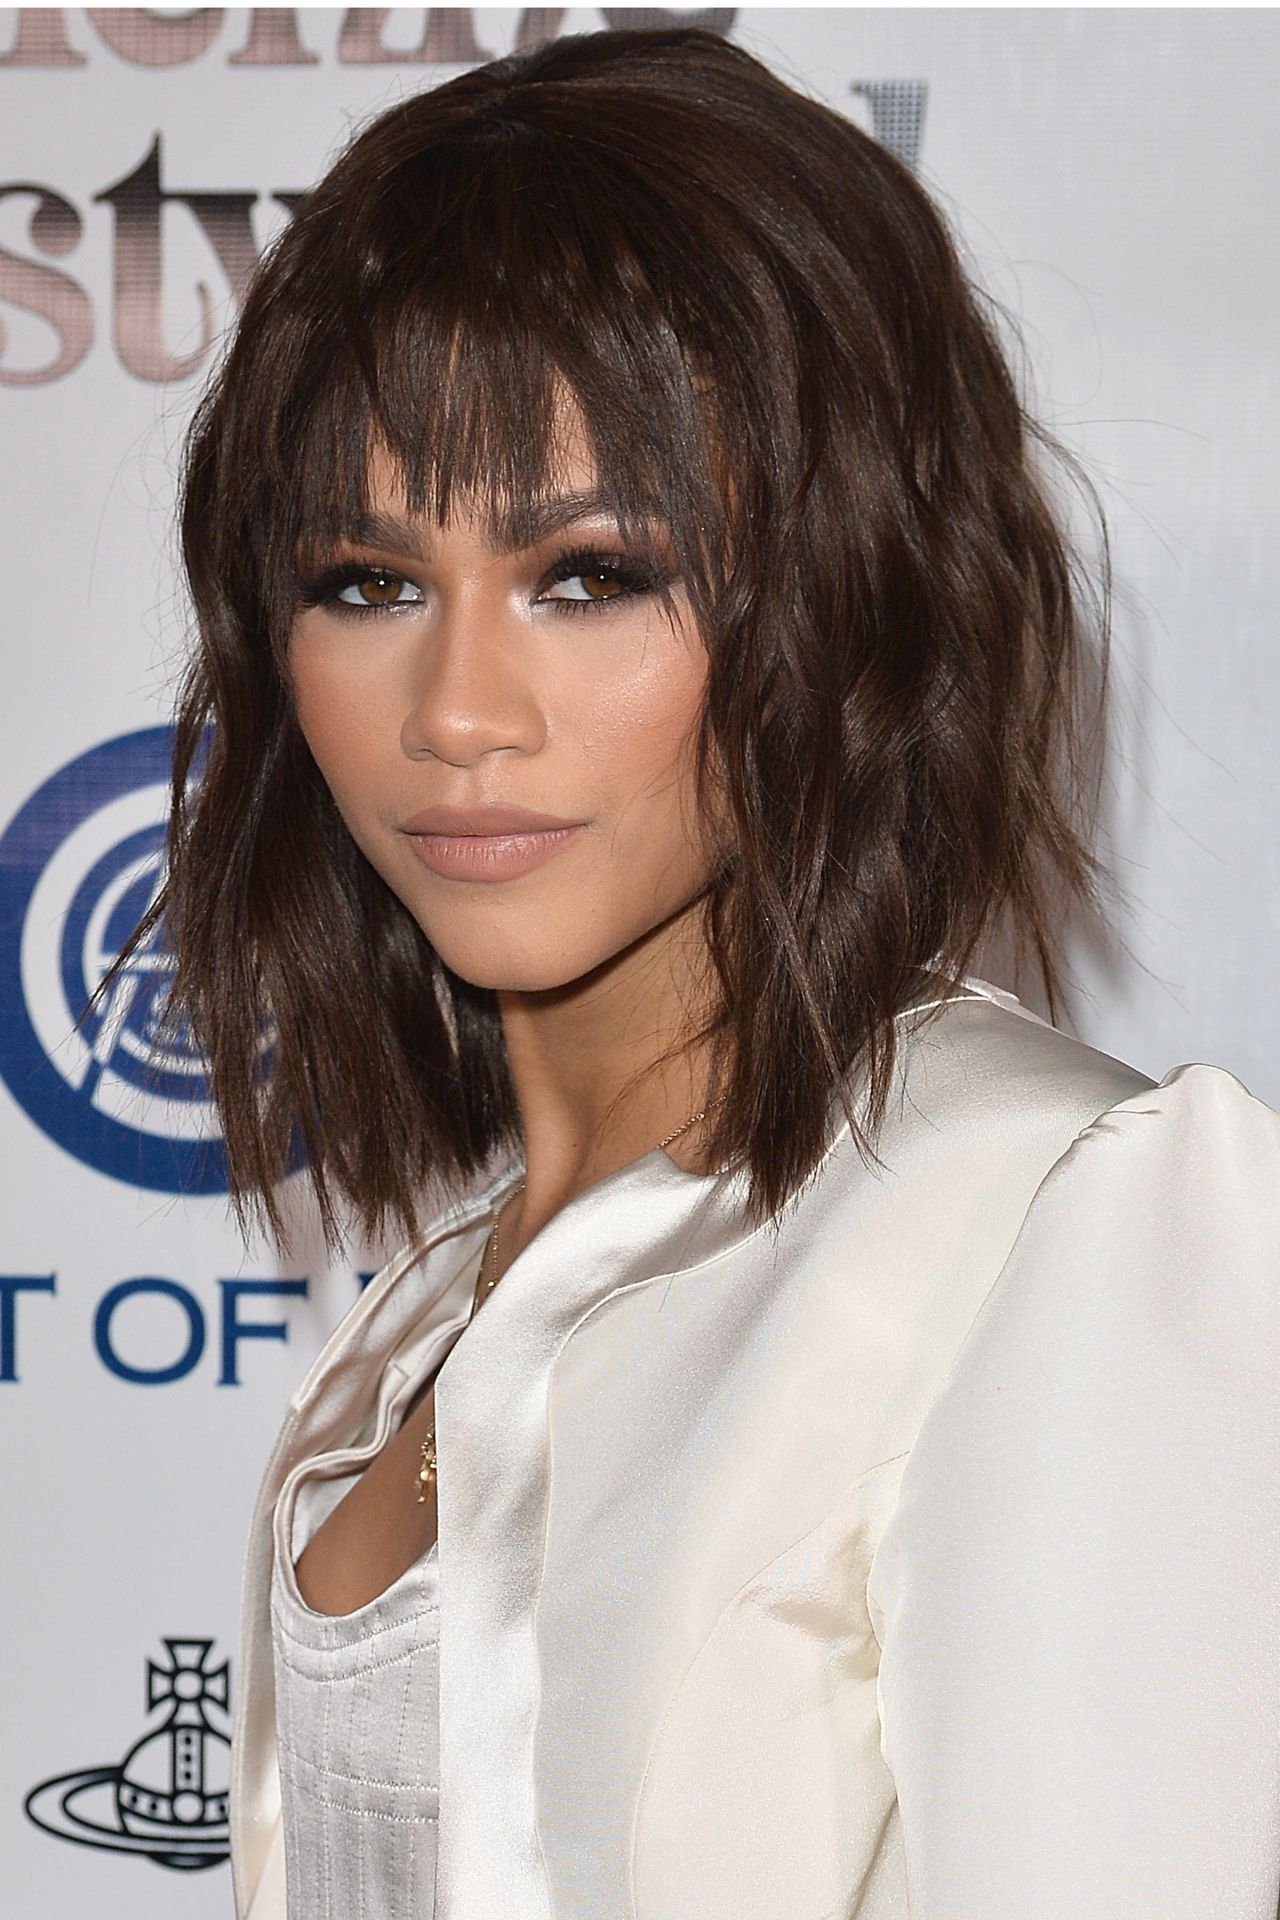 Zendaya Hairstyles : how to do zendaya hairstyles picture ideas with emo haircuts tutorial ...